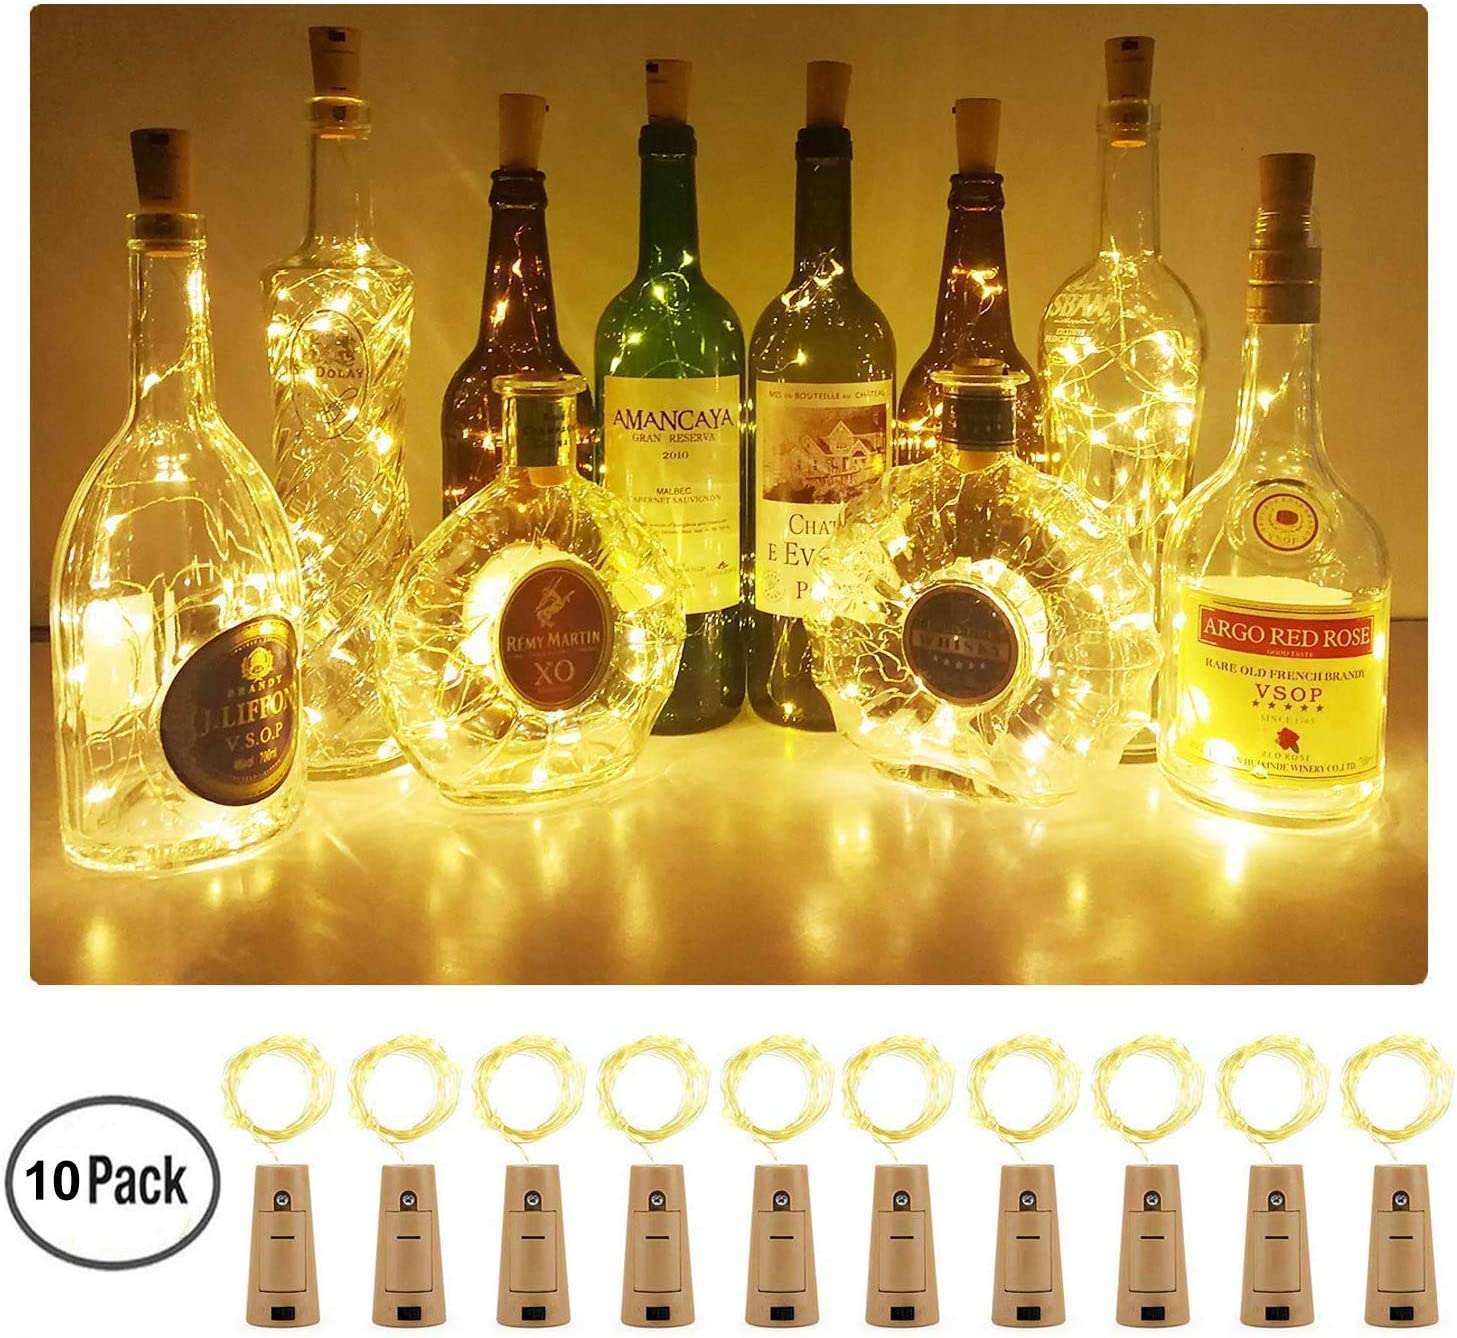 Aluan Wine Bottle Lights 10 Pack Cork Bottle Lights With Screwdriver Battery Operated Wine Cork Lights String Lights For Party Wedding Christmas Halloween Bar Jar Lamp Decor, Warm White